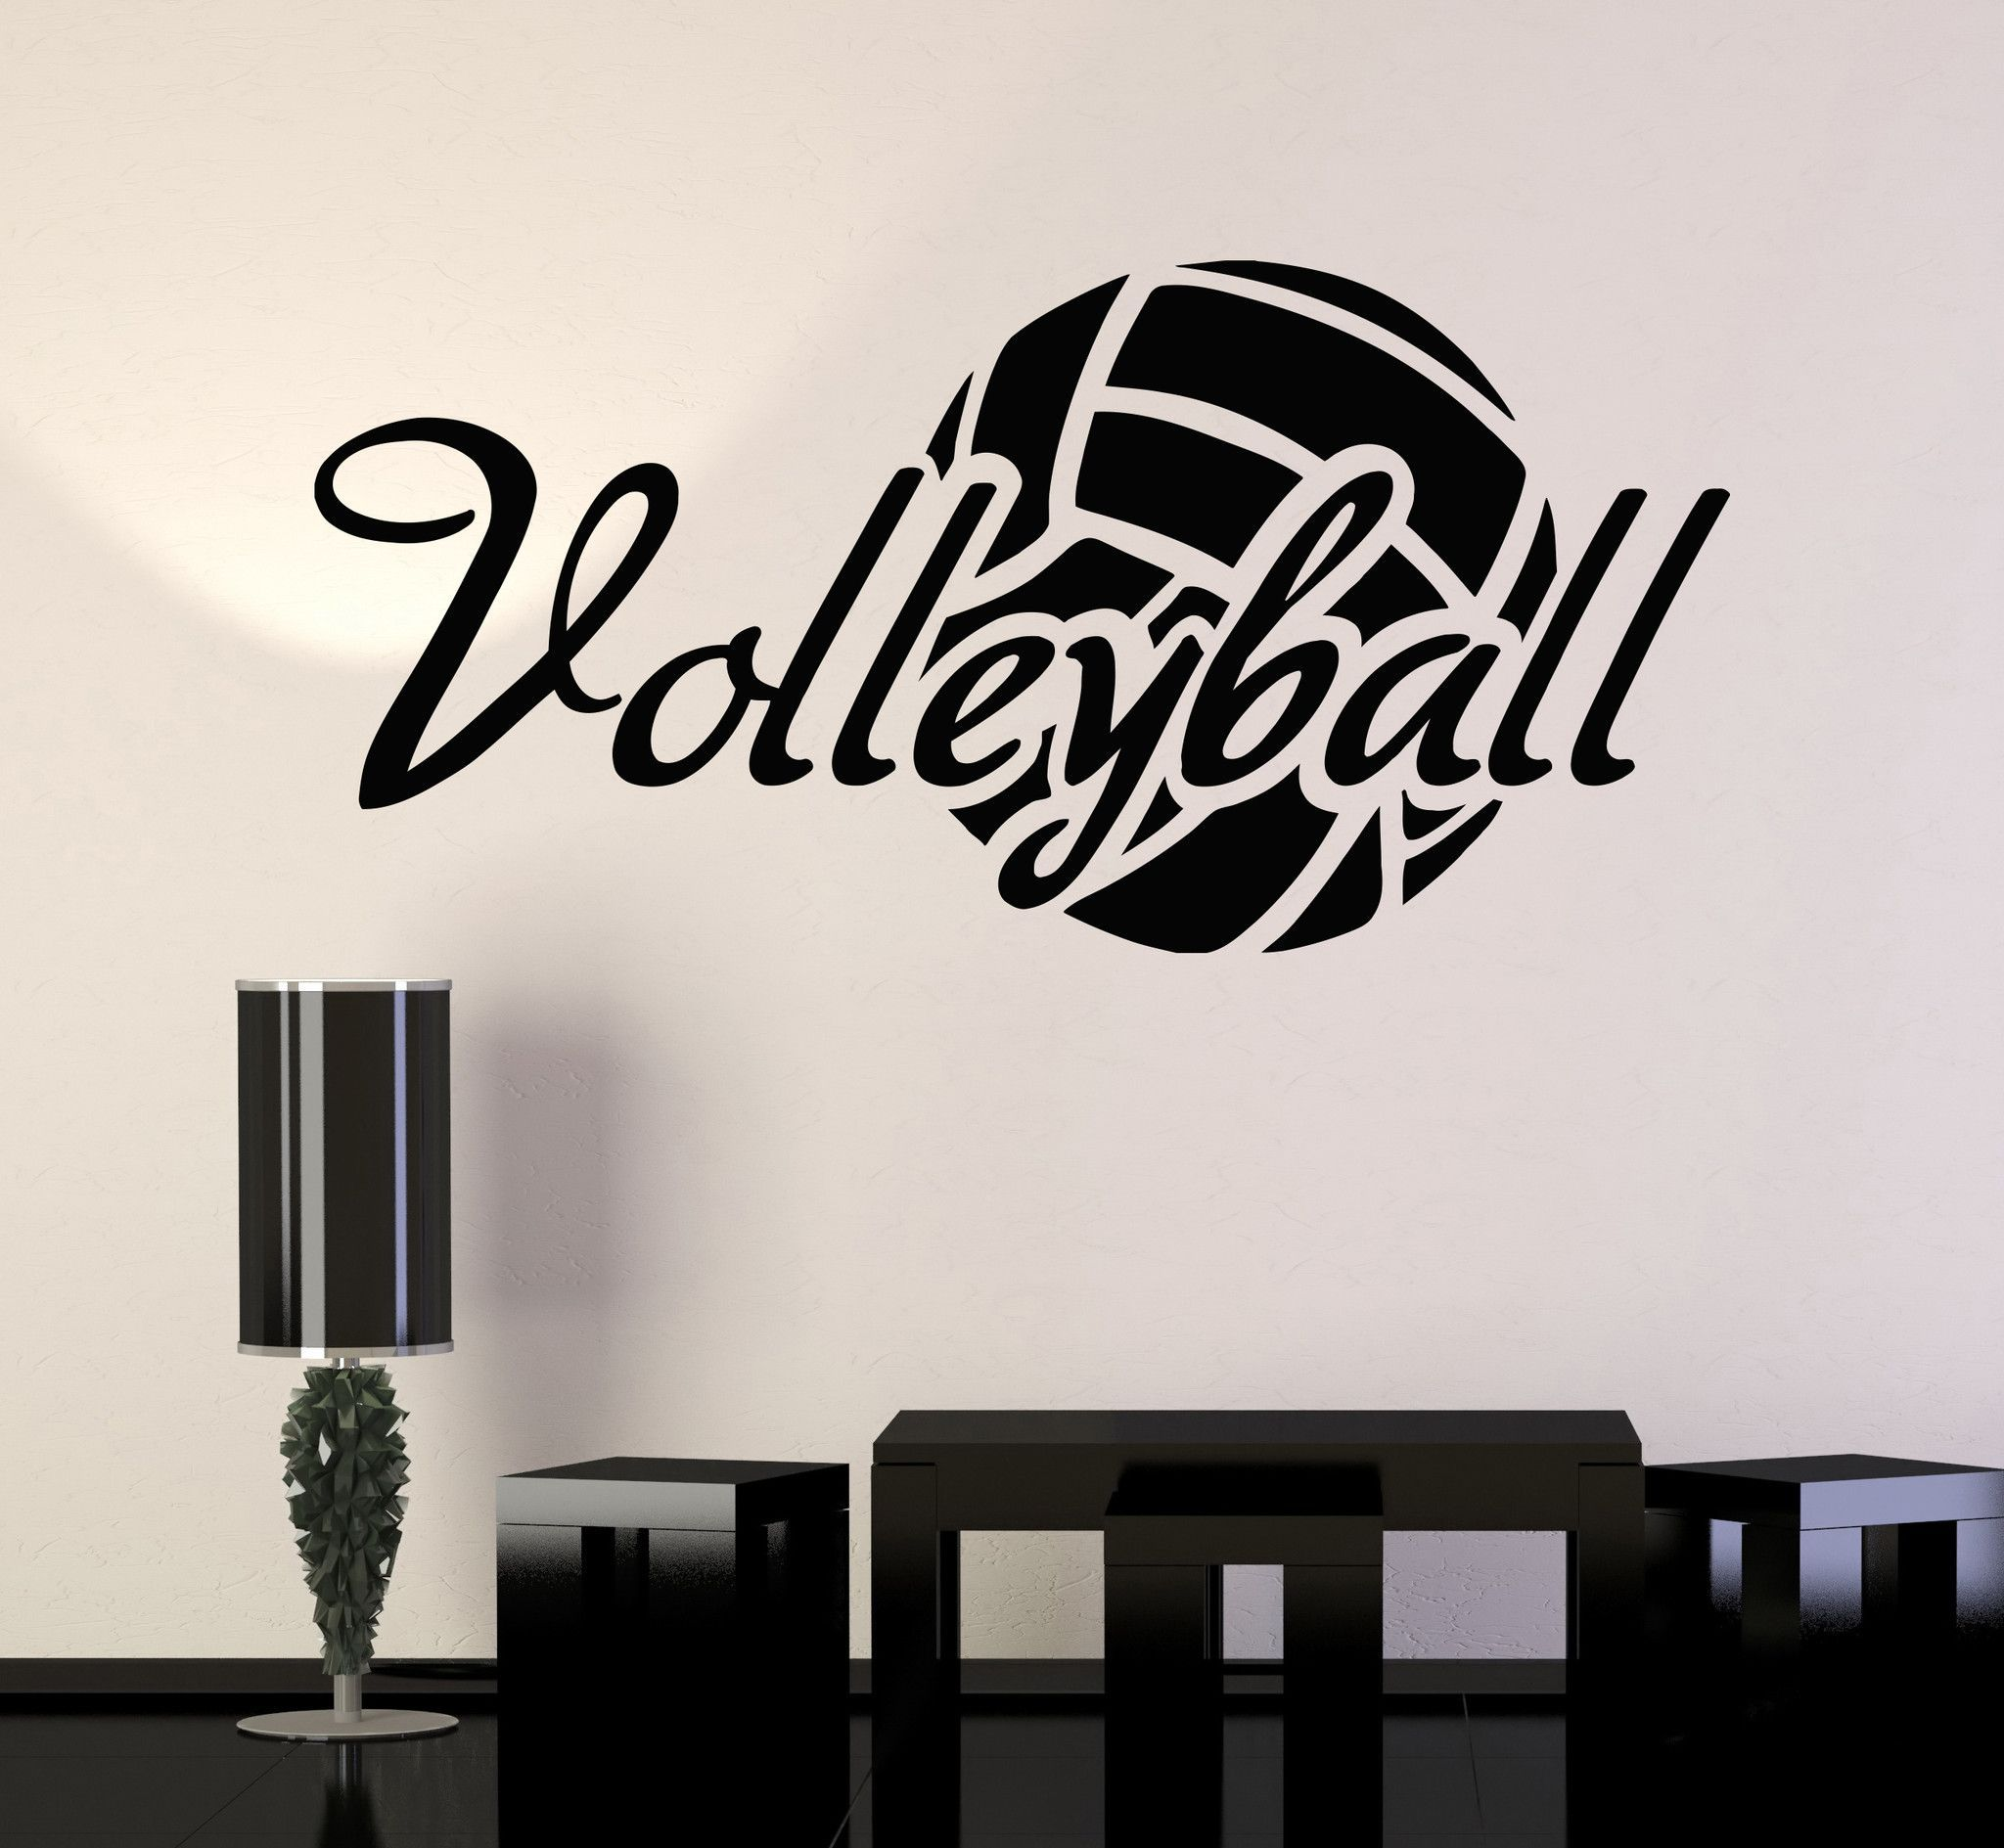 Vinyl Wall Decal Volleyball Ball Sport Stickers Mural Ig - Decal graphics software